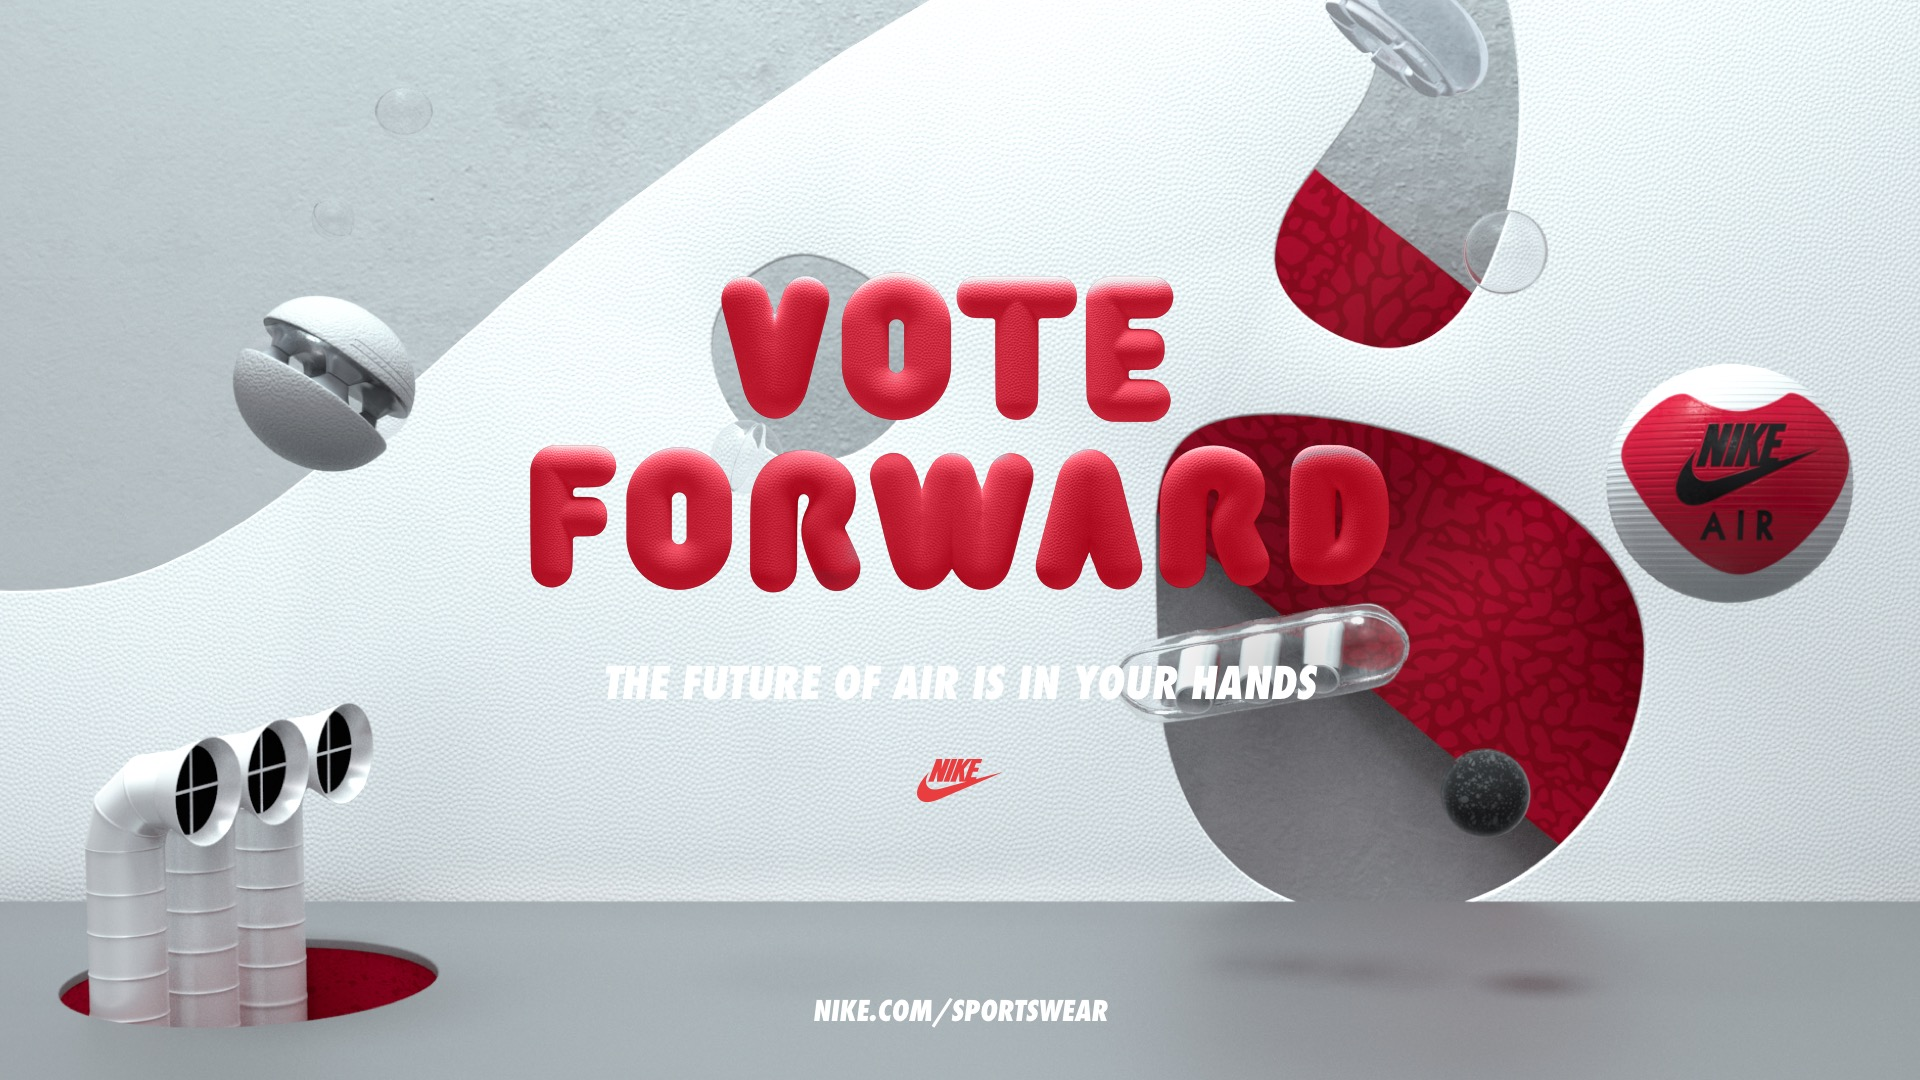 Nike Vote Forward (4 pics)